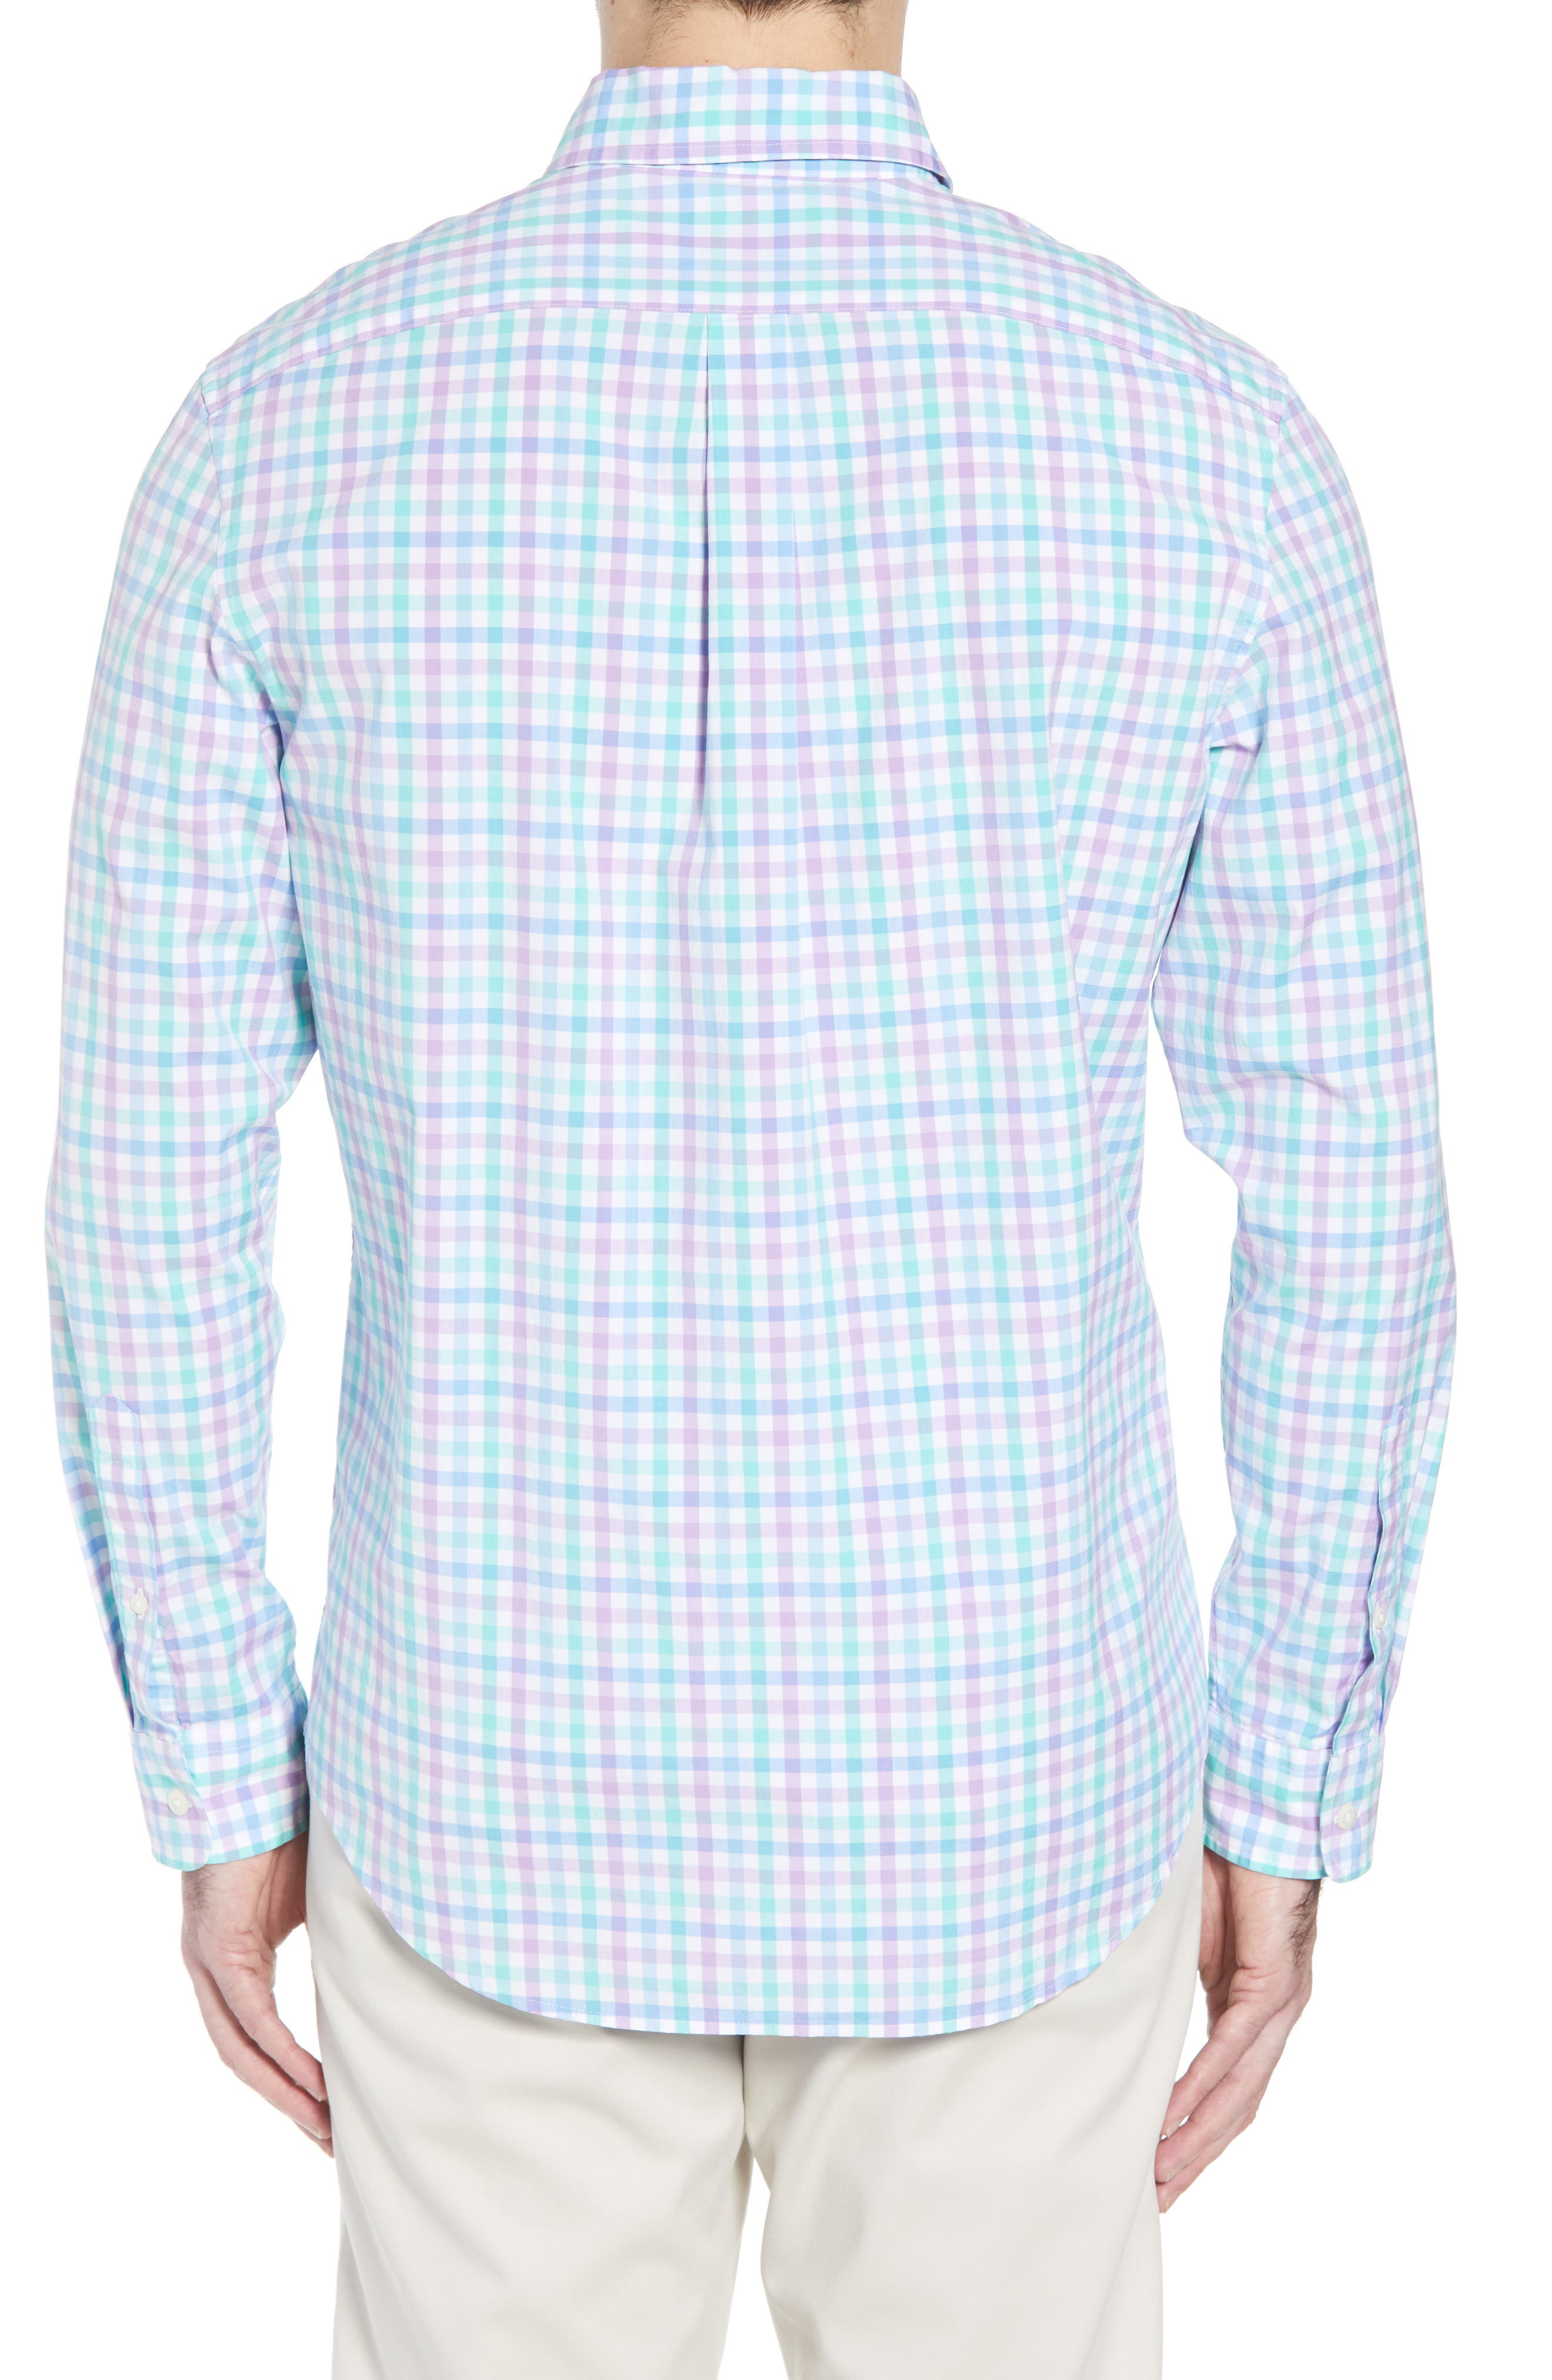 Murray Classic Fit Stretch Check Sport Shirt,                             Alternate thumbnail 3, color,                             Sea Urchin